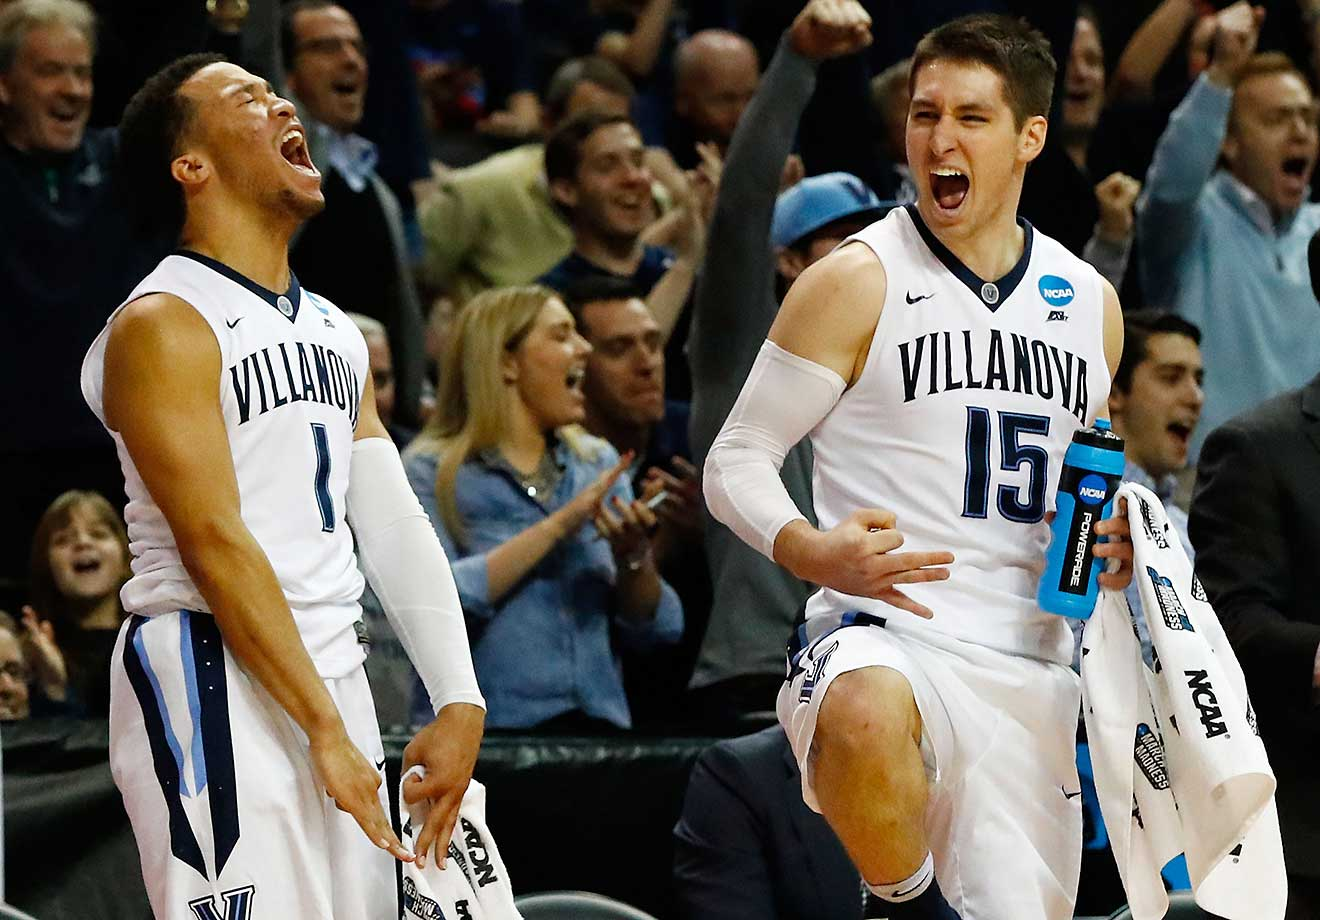 Jalen Brunson and Ryan Arcidiacono celebrate a 30-point victory over UNC Asheville Bulldogs.